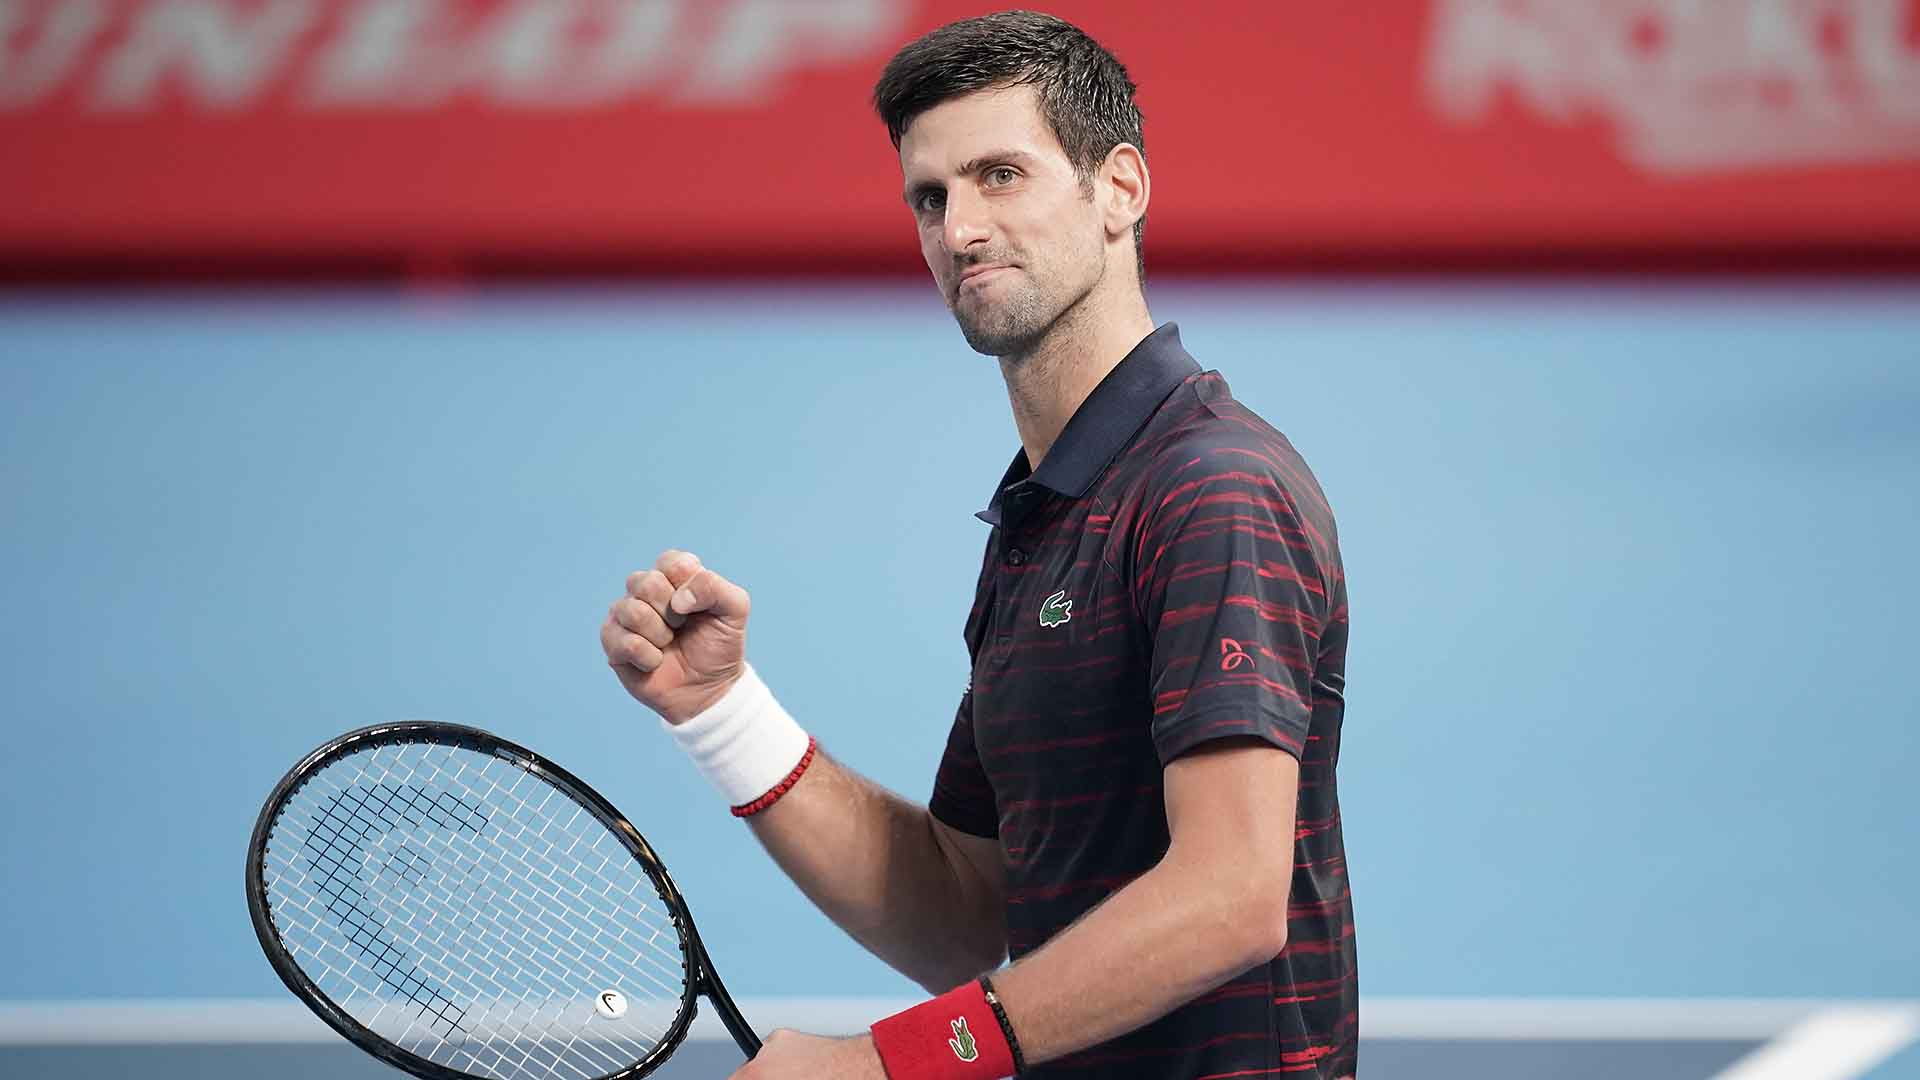 Novak Djokovic did not drop a set en route to the Rakuten Japan Open Tennis Championships title.